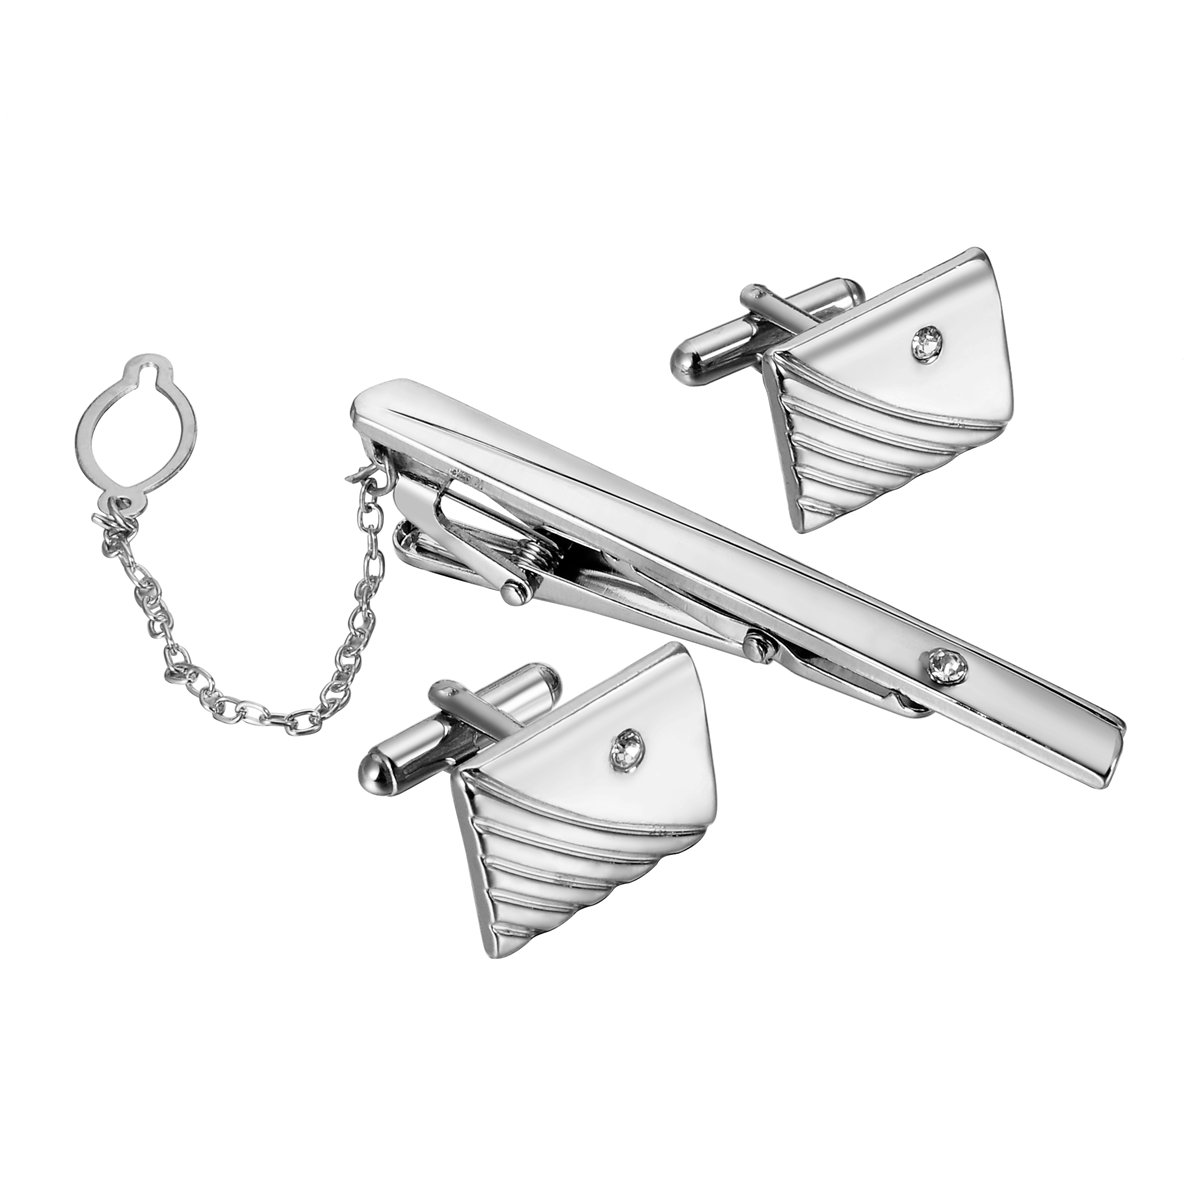 HooAMI Men's Crystal Metal Cufflink and Tie Clip Set,Silver